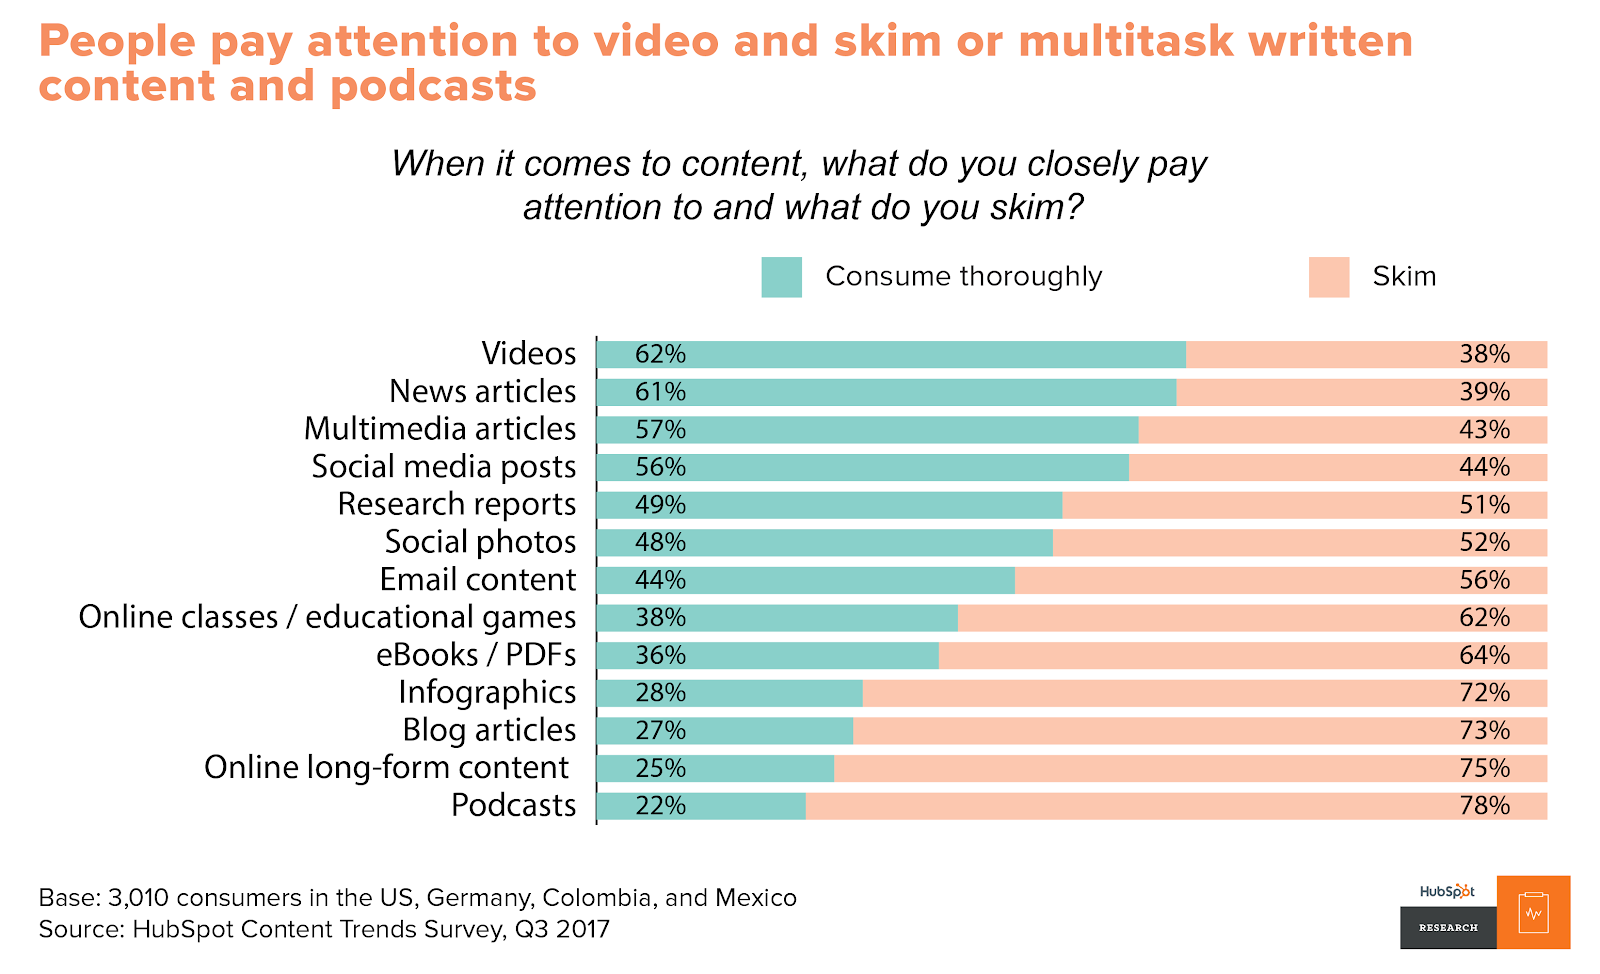 Graphics showing that people pay more attention to videos compared with other types of content.